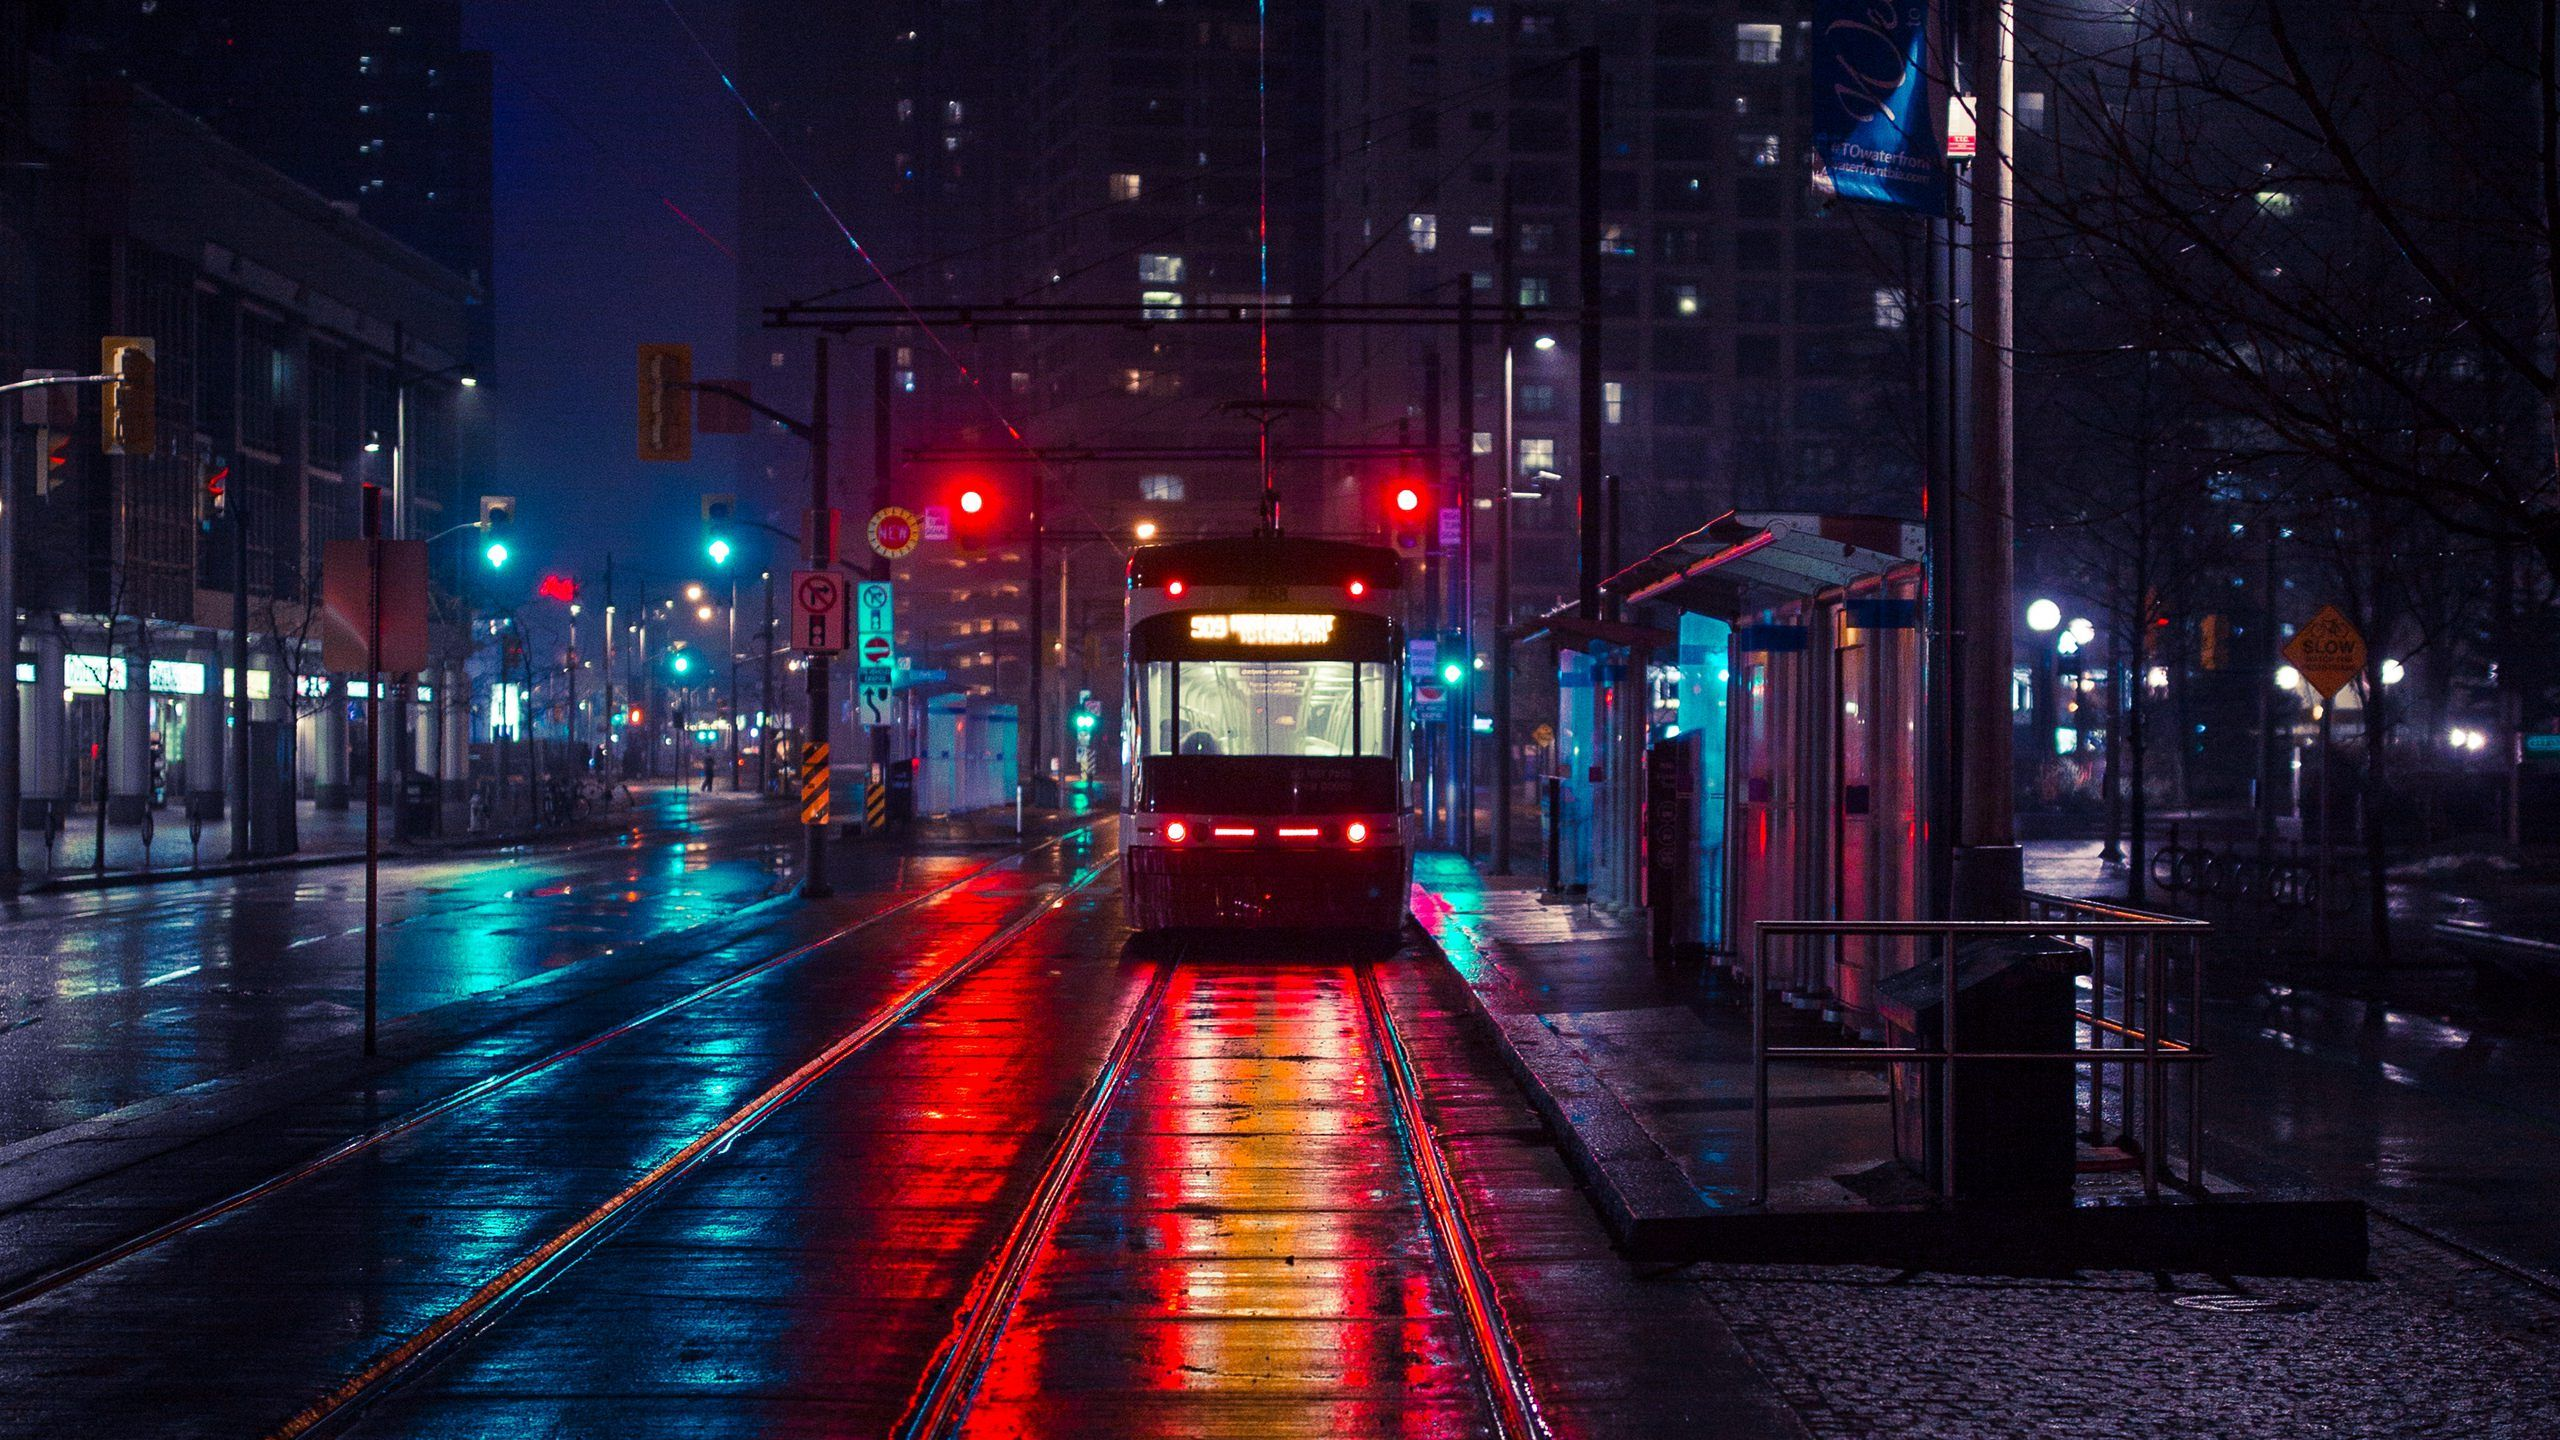 Trolley At Night 2560x1440 City Wallpaper Cityscape Wallpaper Laptop Wallpaper Desktop Wallpapers